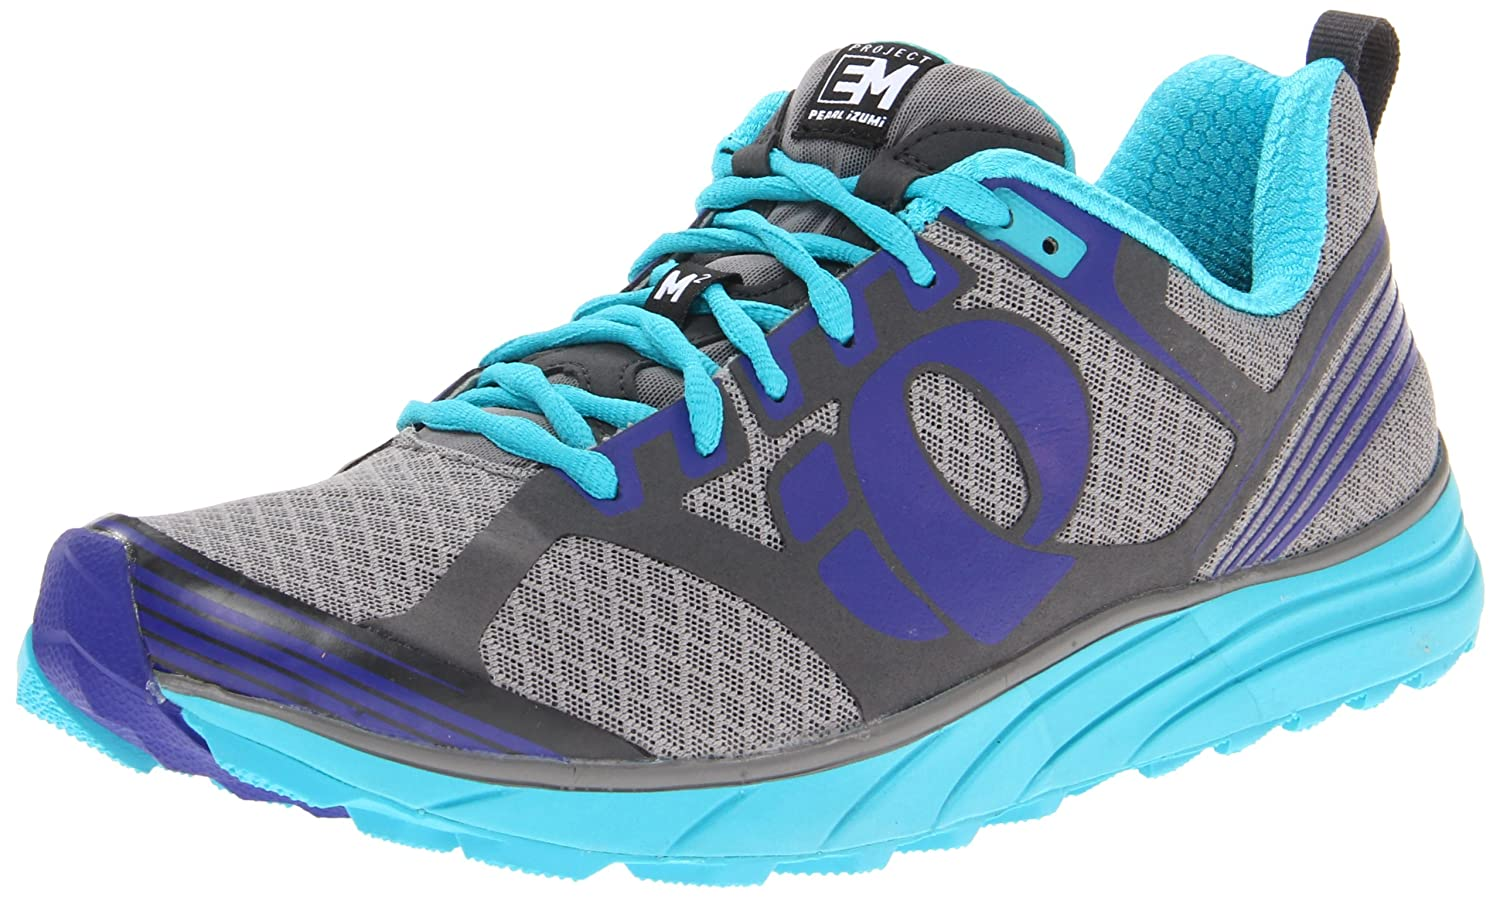 Pearl iZUMi Women's W EM Trail M 2 Running Shoe B008OR9MQ4 6 B(M) US|Scuba Blue/Shadow Grey